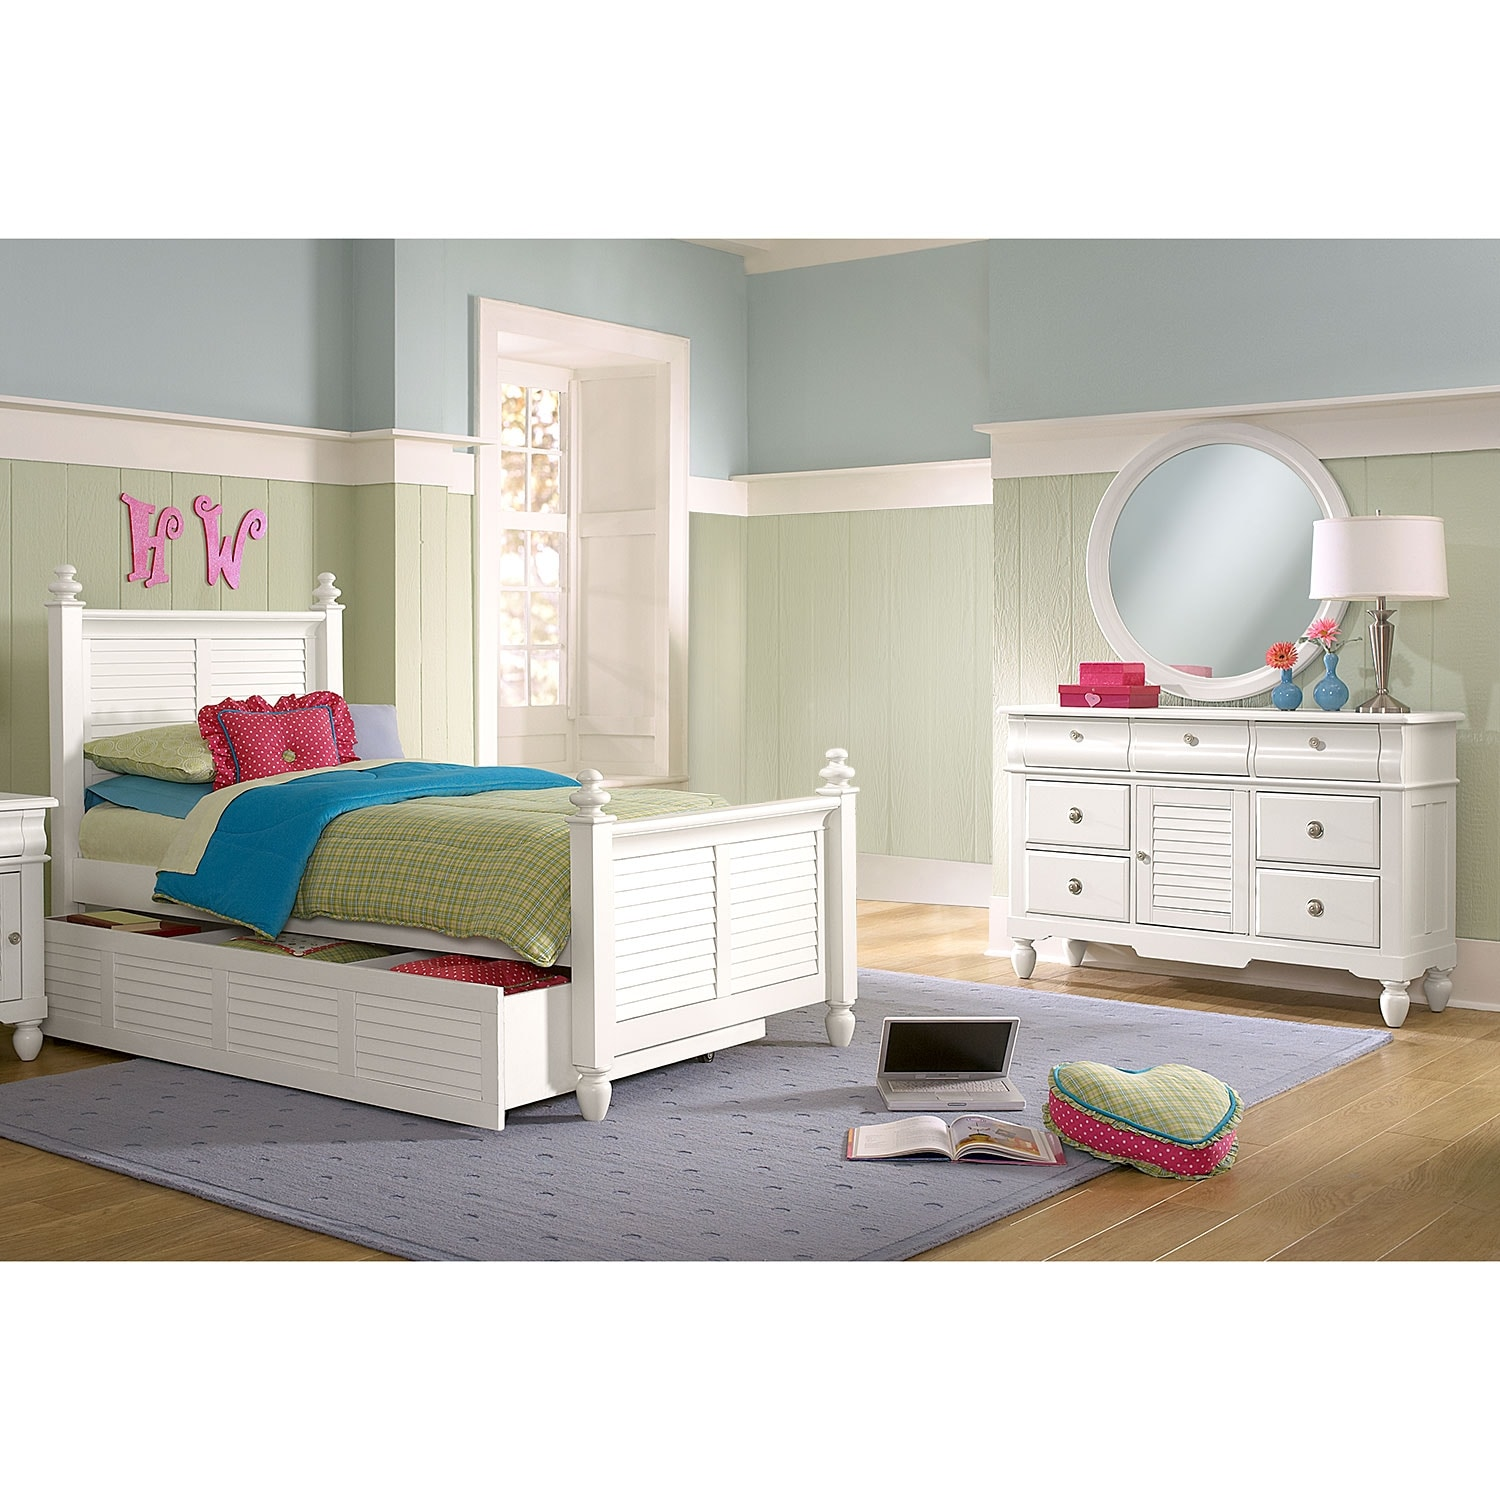 [Seaside White 6 Pc. Full Bedroom with Trundle]